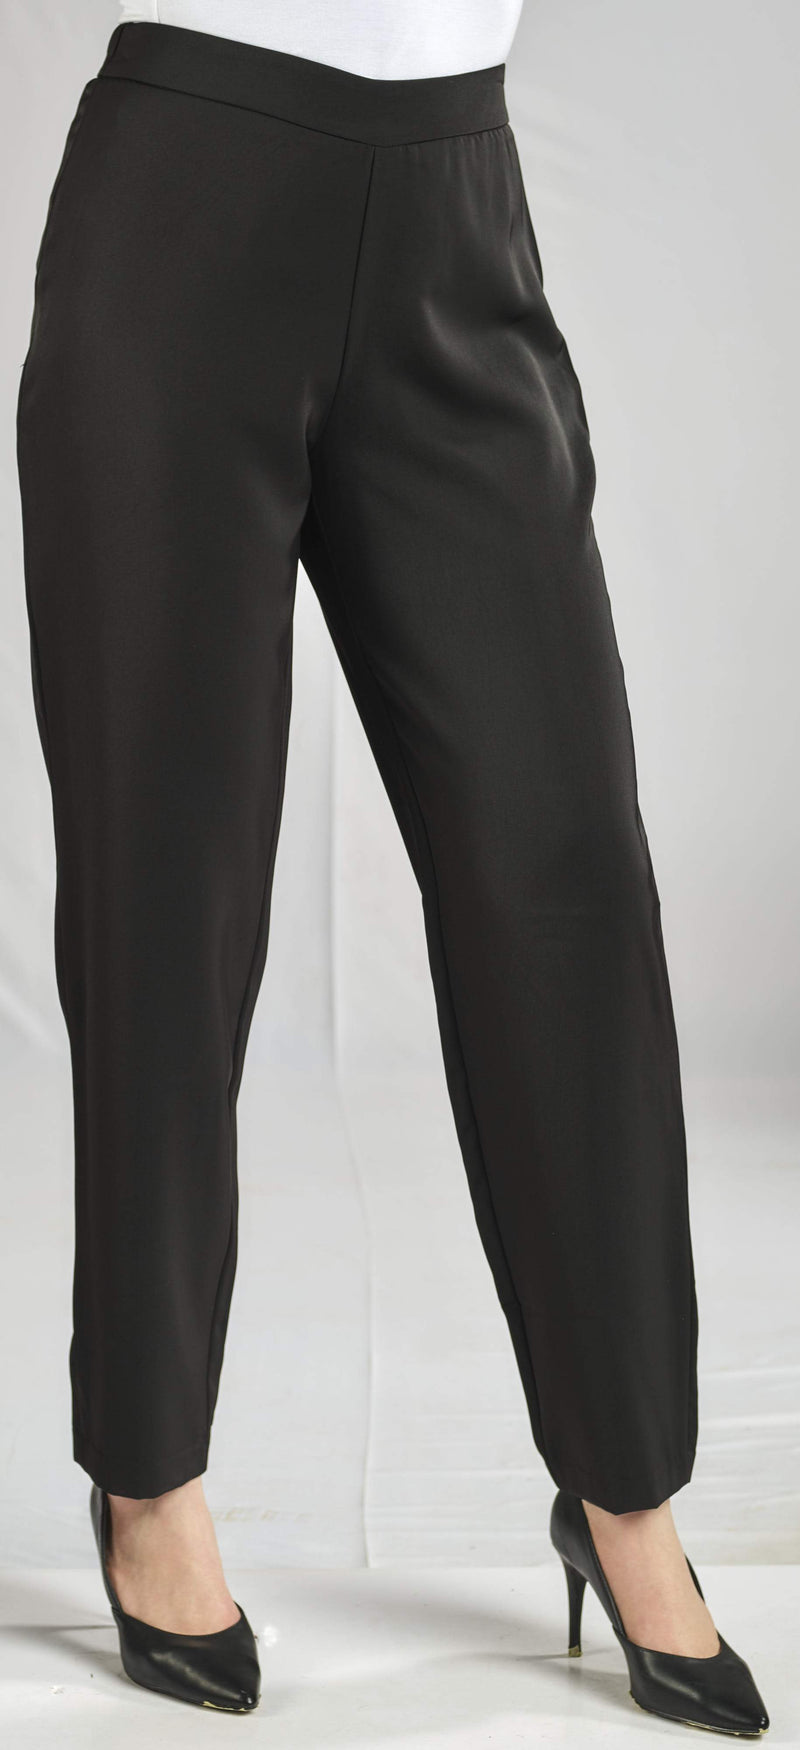 BASIC SILKY CREPE PANTS WITH ELASTIC WAIST FOR EXTRA COMFORT